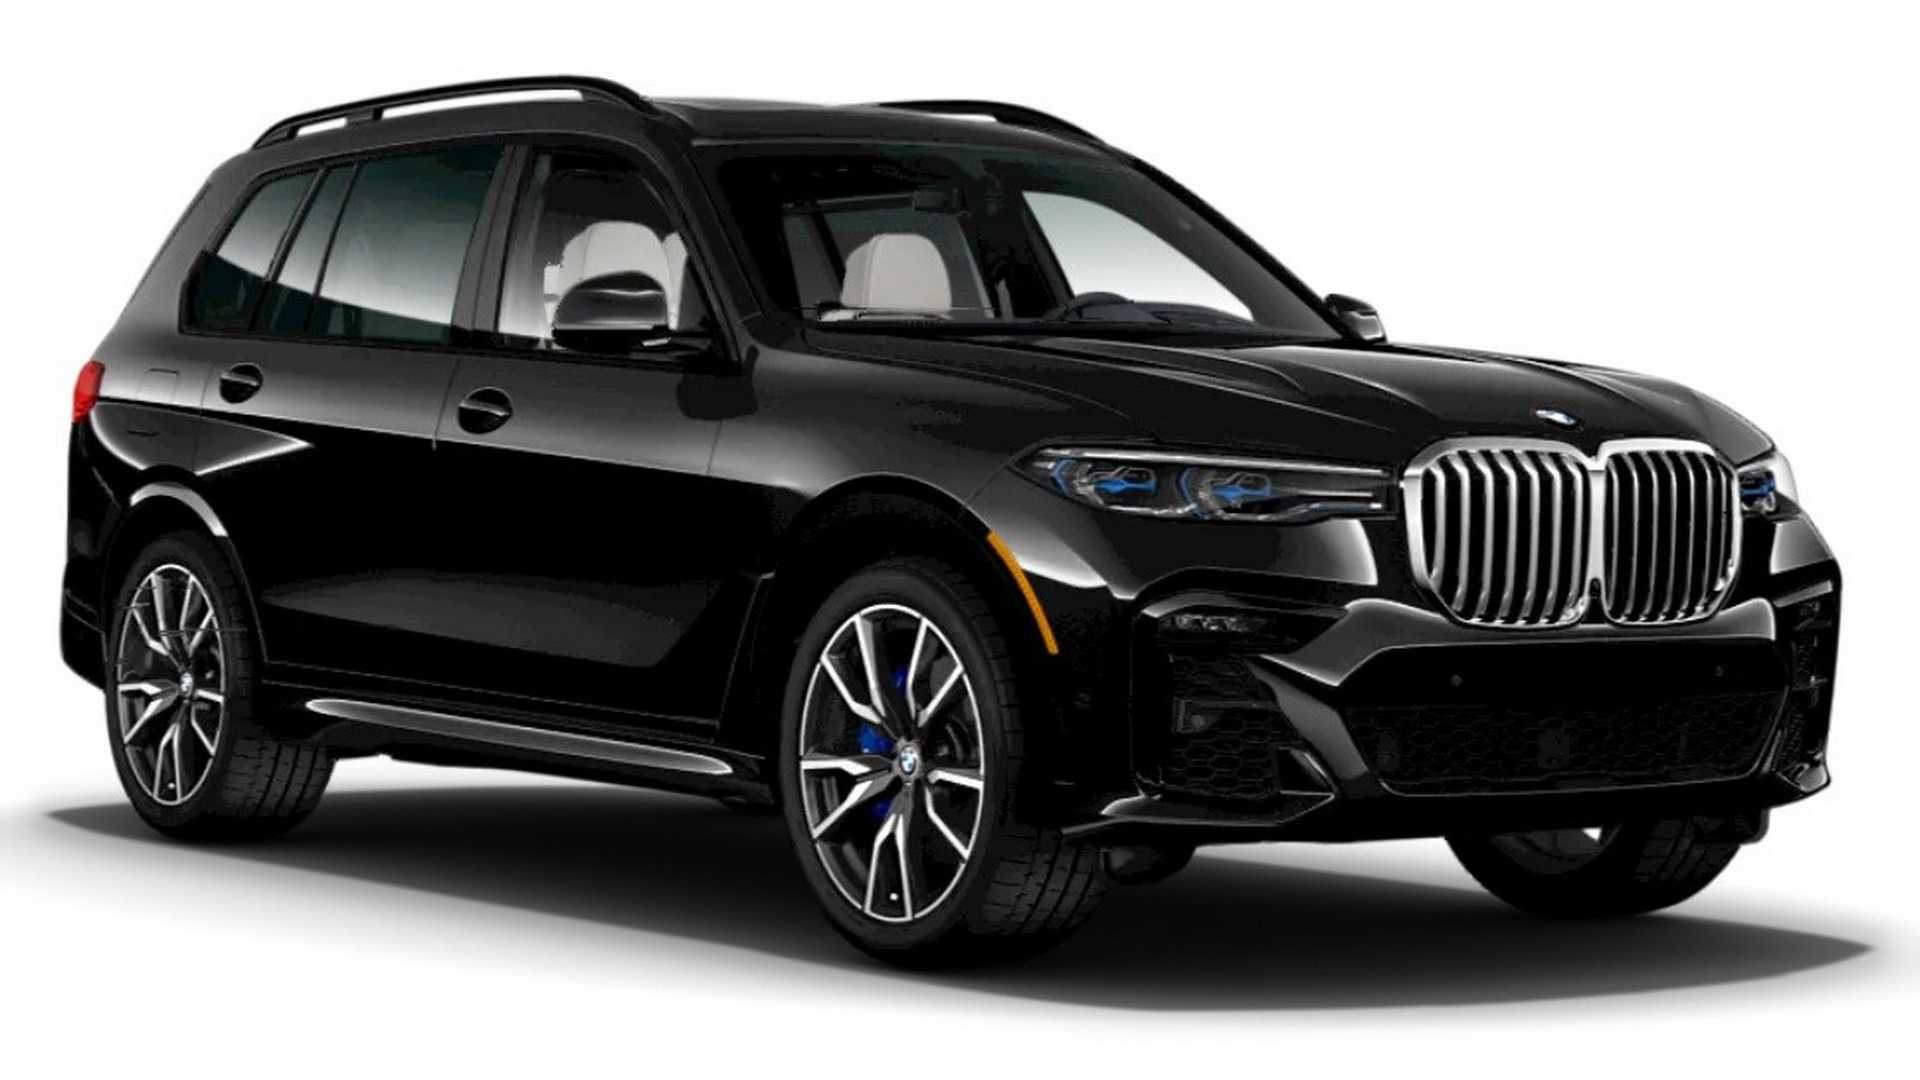 93 The 2020 BMW X7 Suv Series Photos